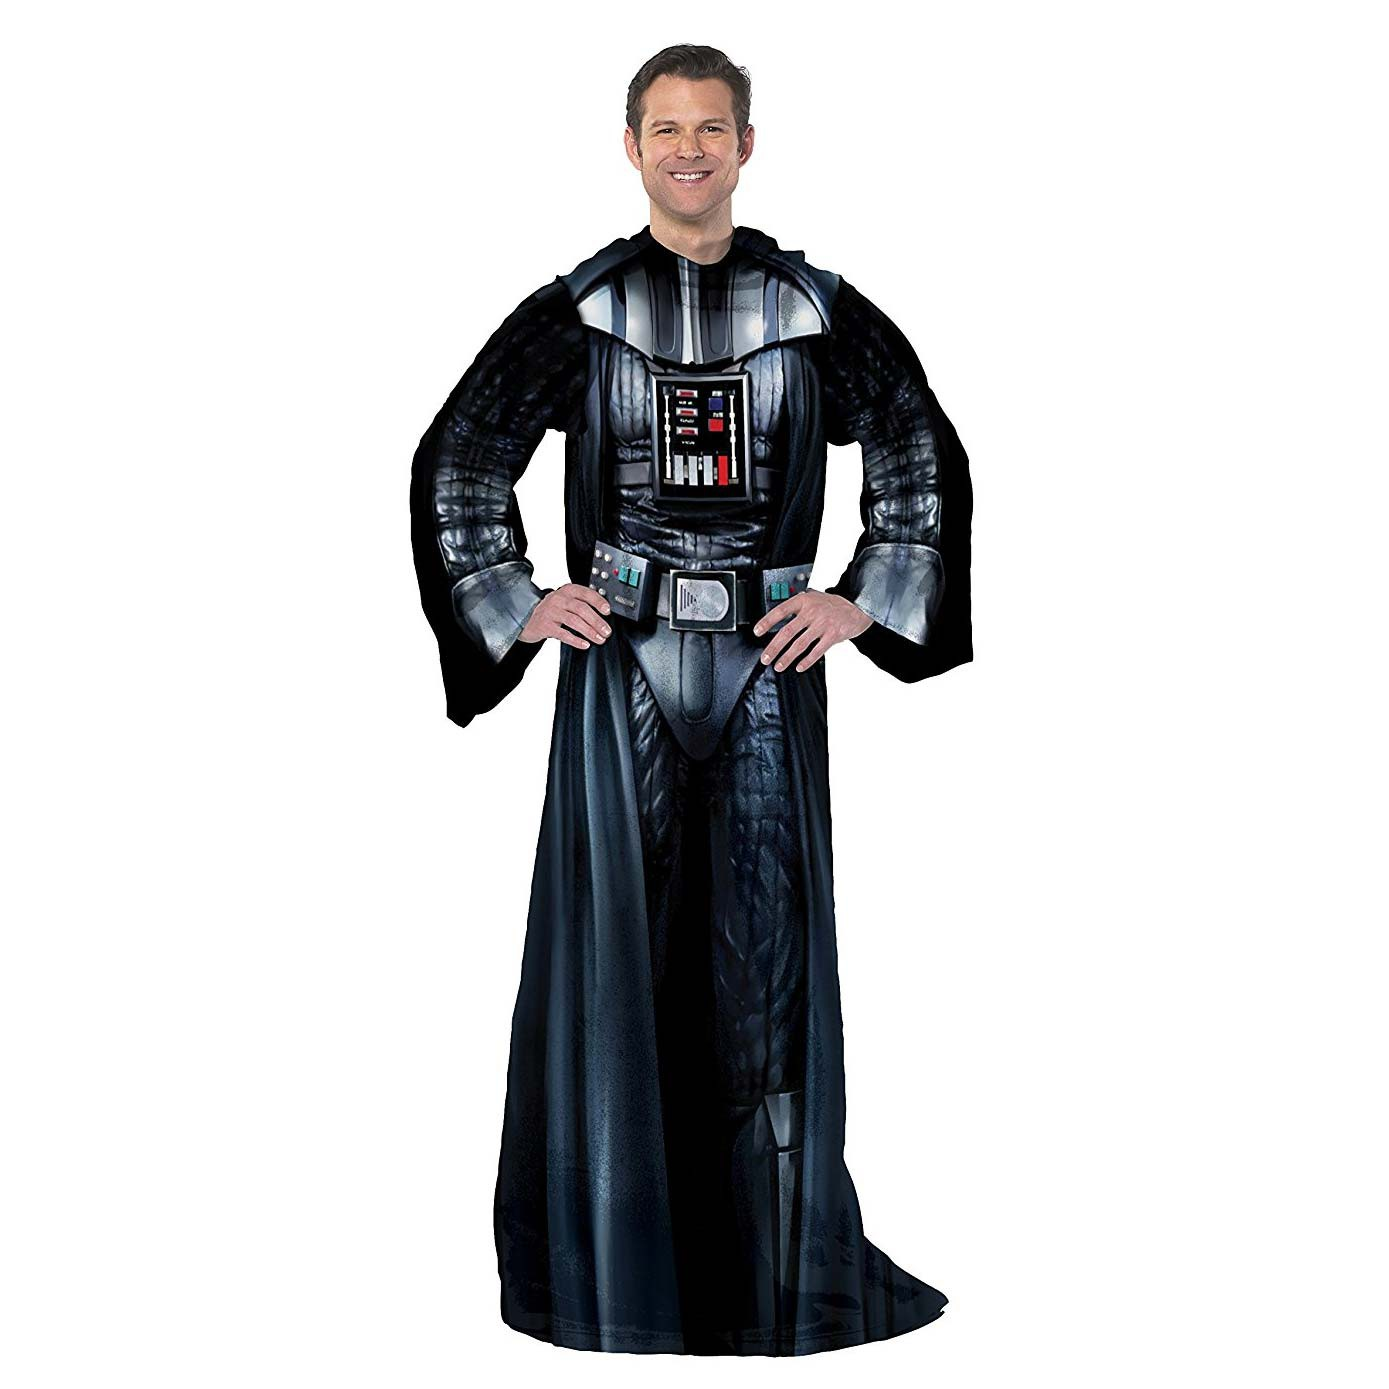 Star Wars Darth Vader Adult Snuggie